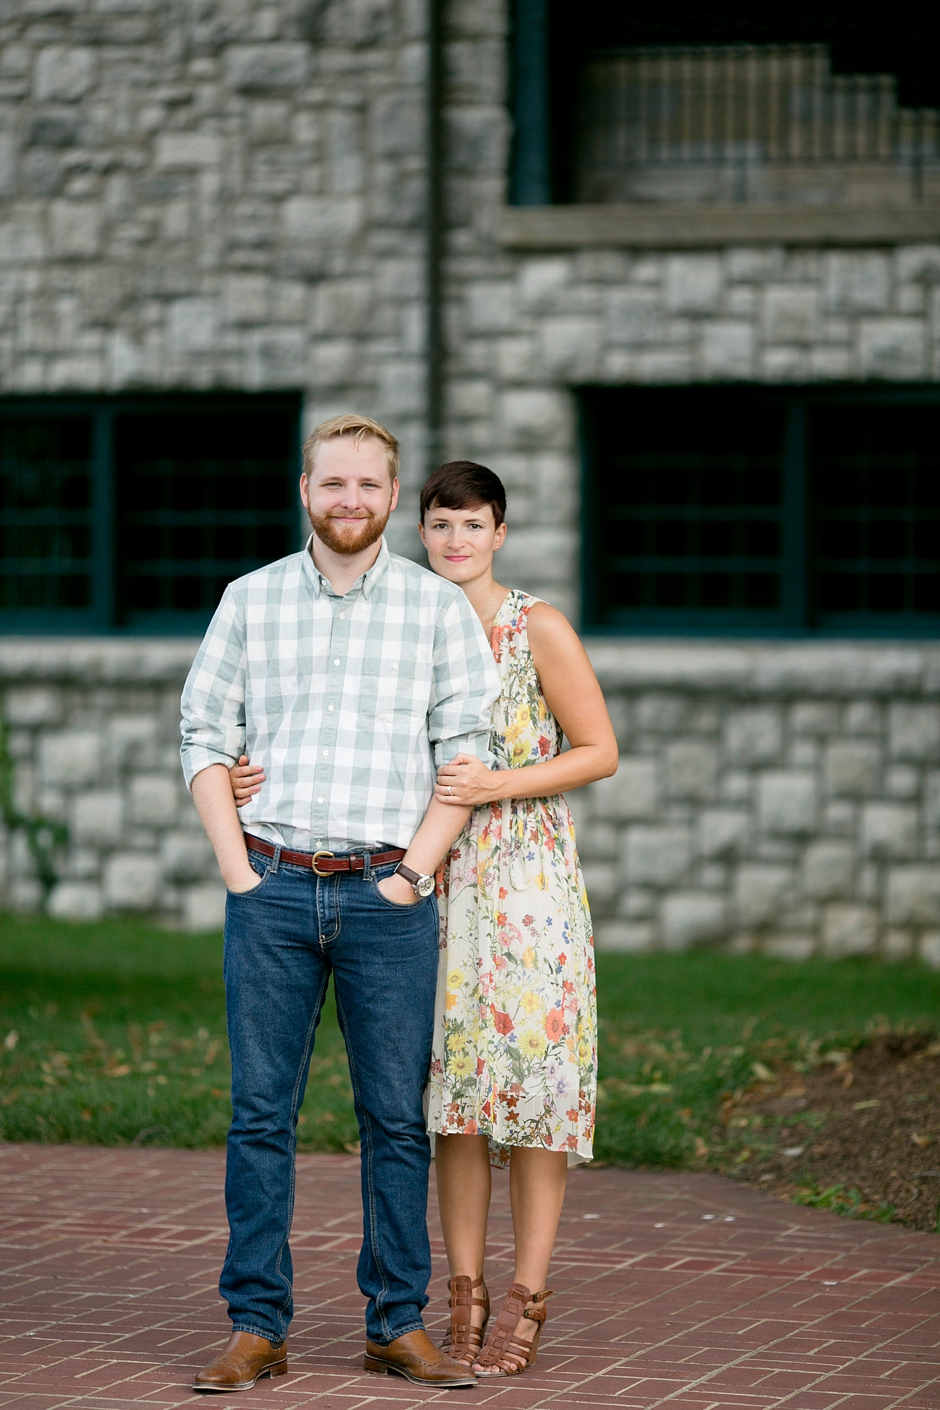 keeneland-engagement-photos-corgi-bluegrass-ky-equestrian-012